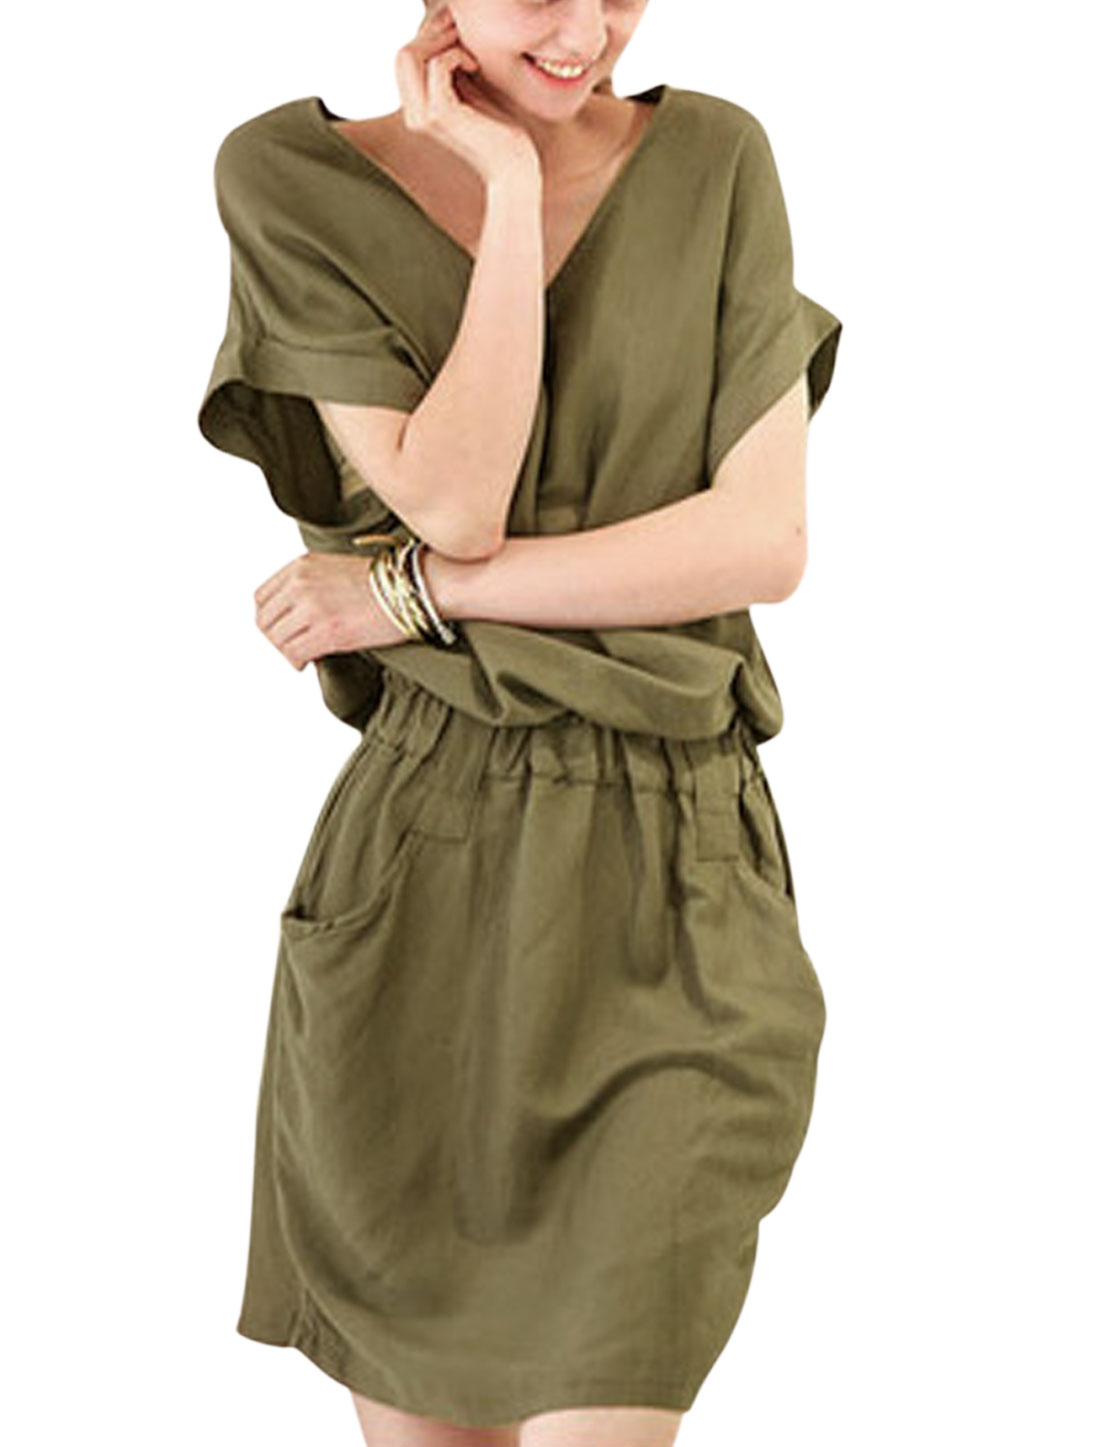 Ladies Short Sleeve Elastic Waist Front Pockets Casual Dress Army Green XS